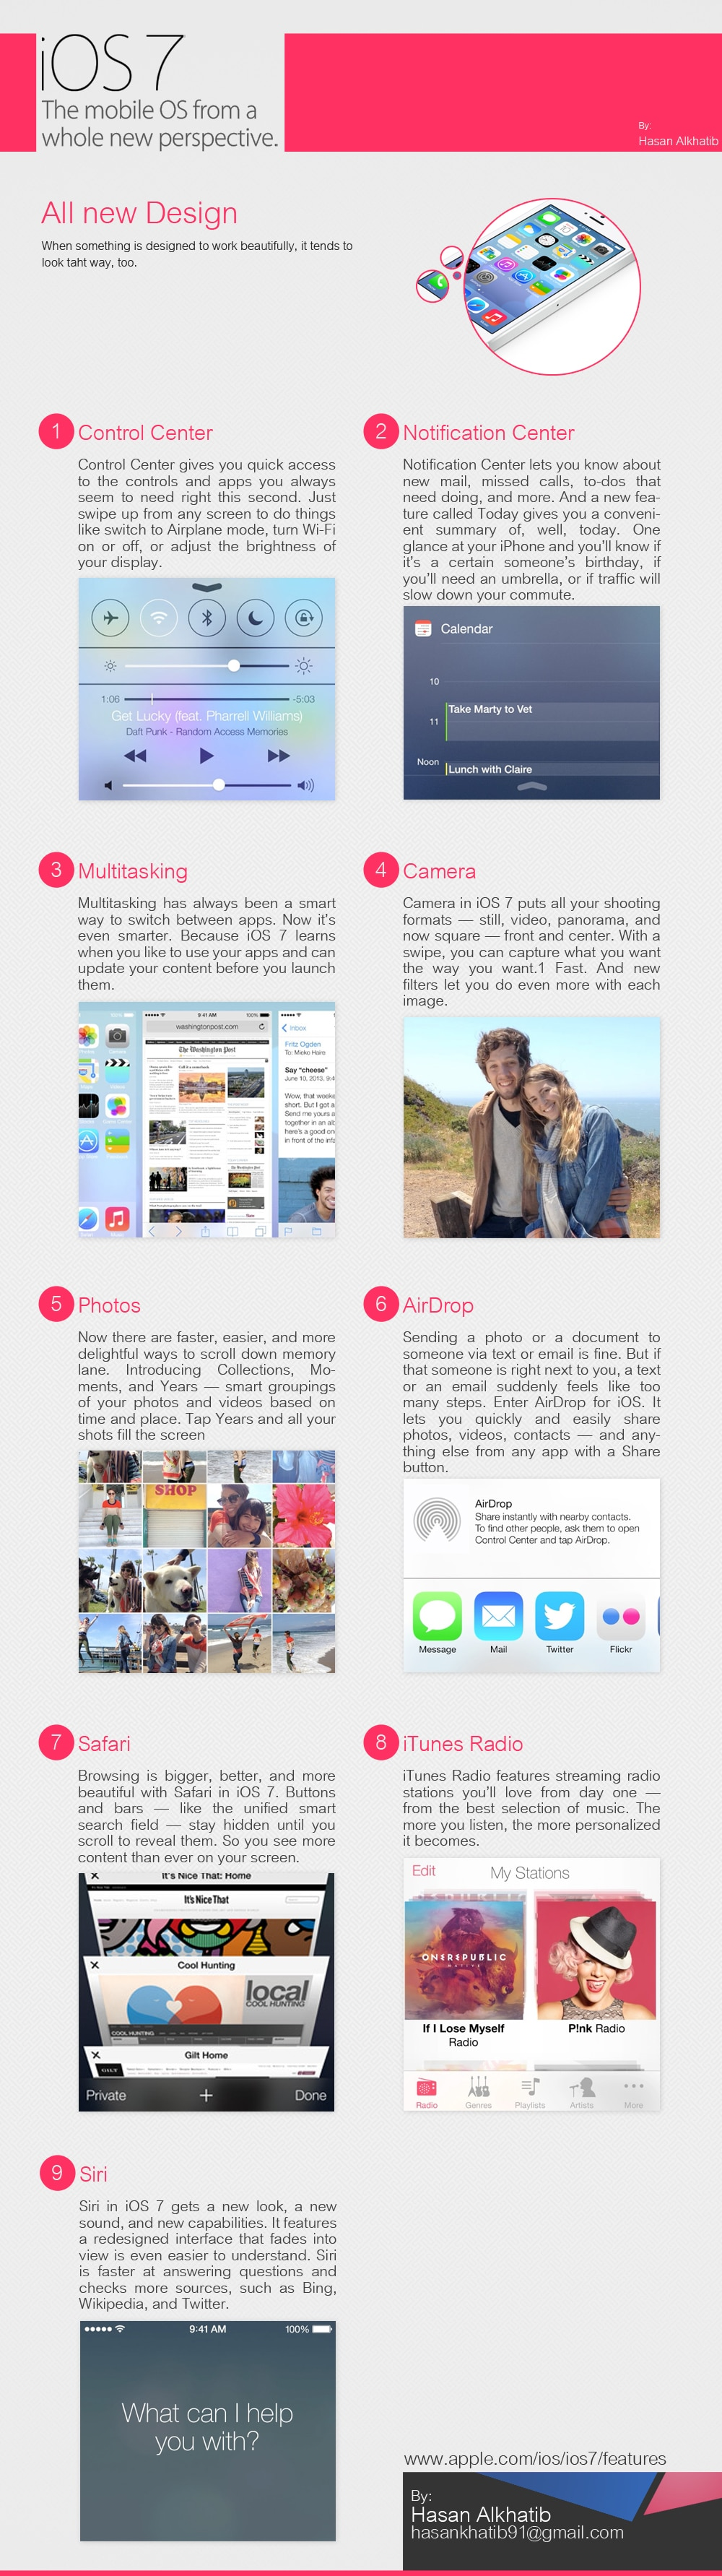 Complete iOS 7 Feature Overview [Infographic]